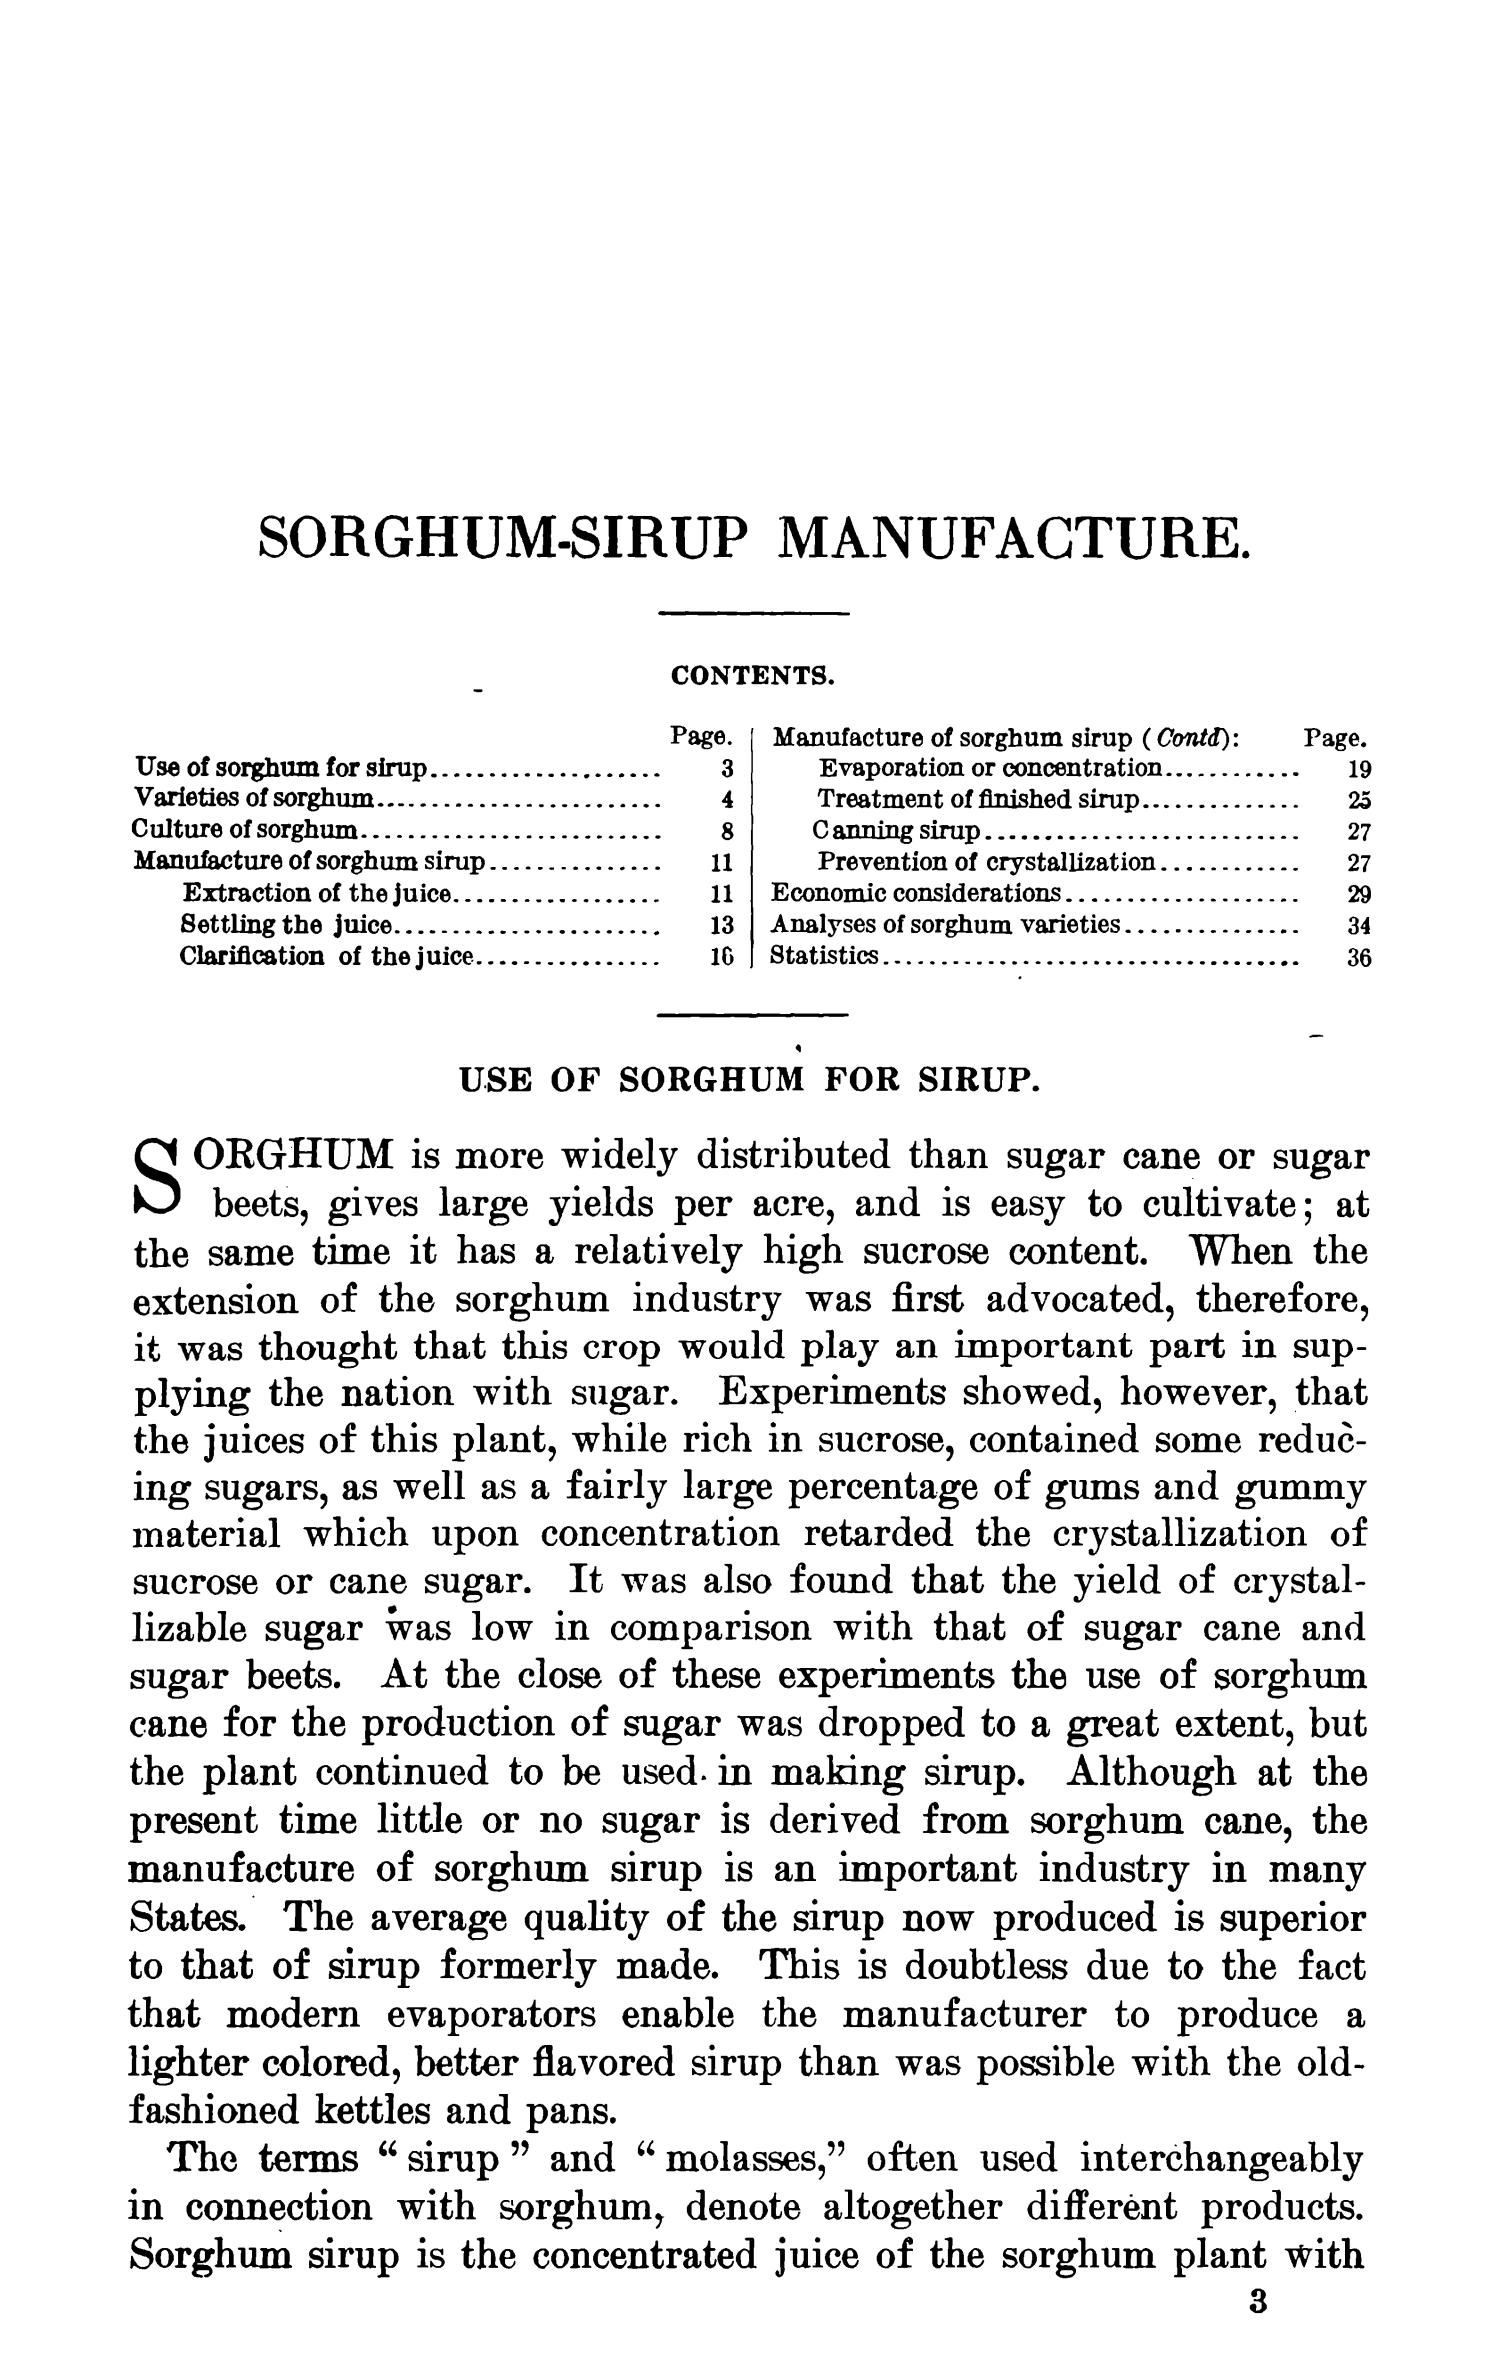 Sorghum-Syrup Manufacture                                                                                                      3